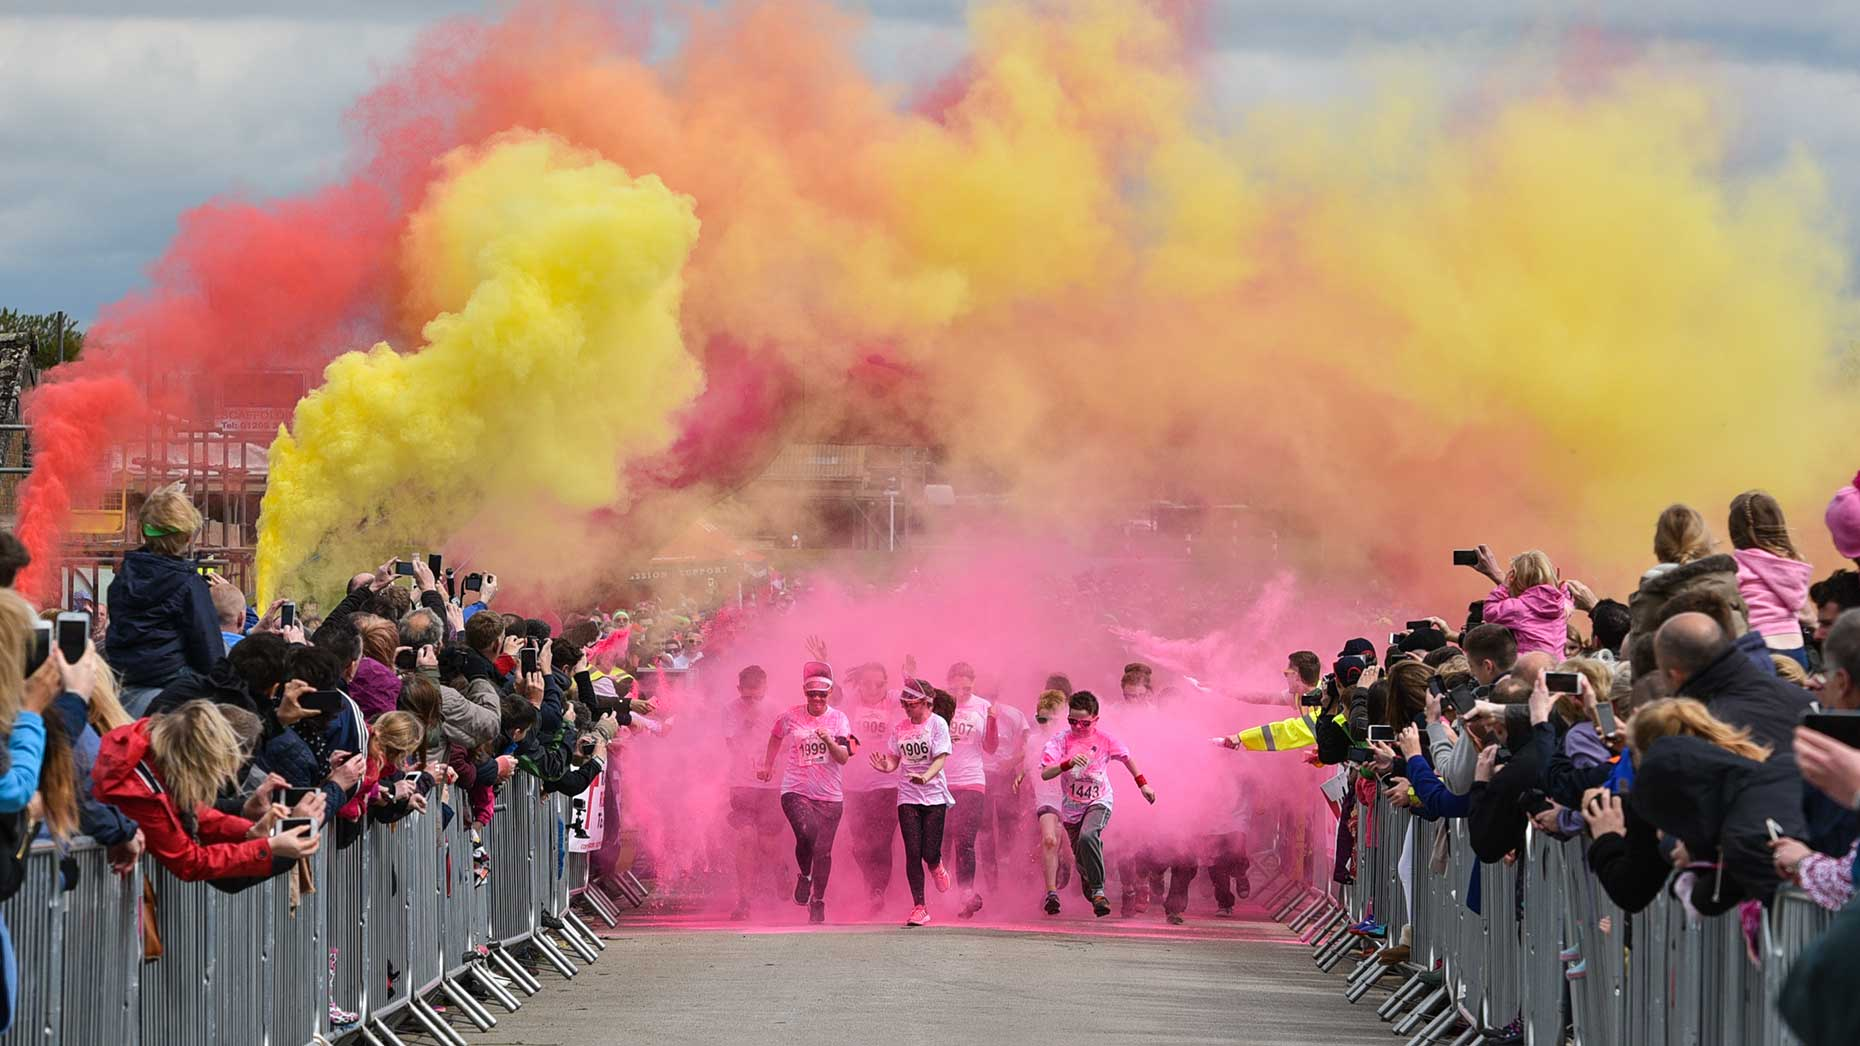 This years event will see 3,500 runners take on the powdered paint Photo: Steve Smailes for The Lincolnite